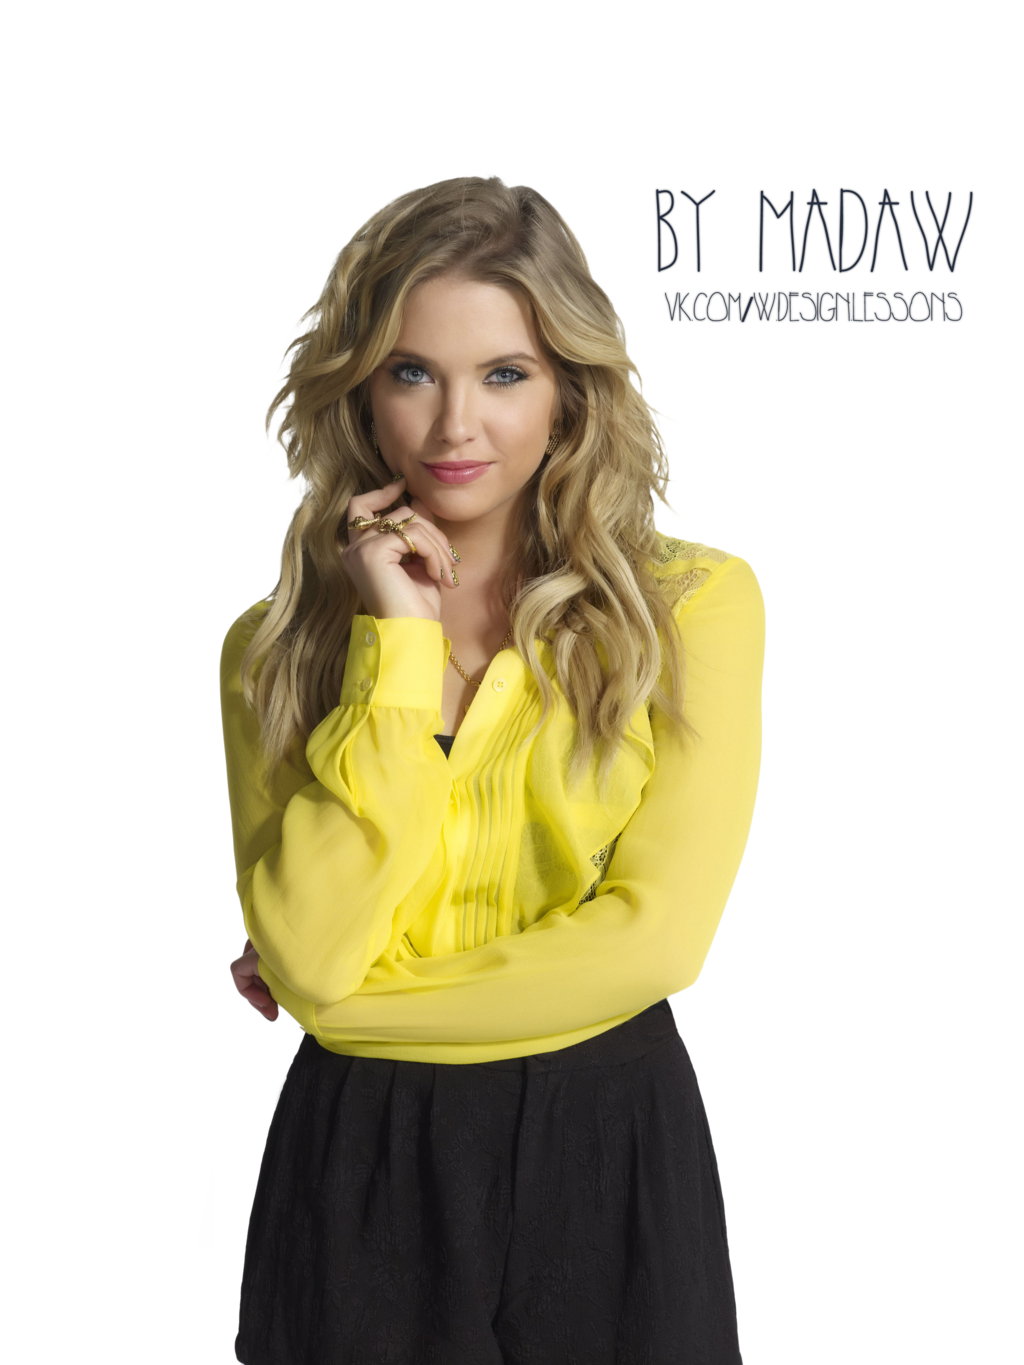 Ashley Benson PNG by MADAW - Ashley Benson PNG